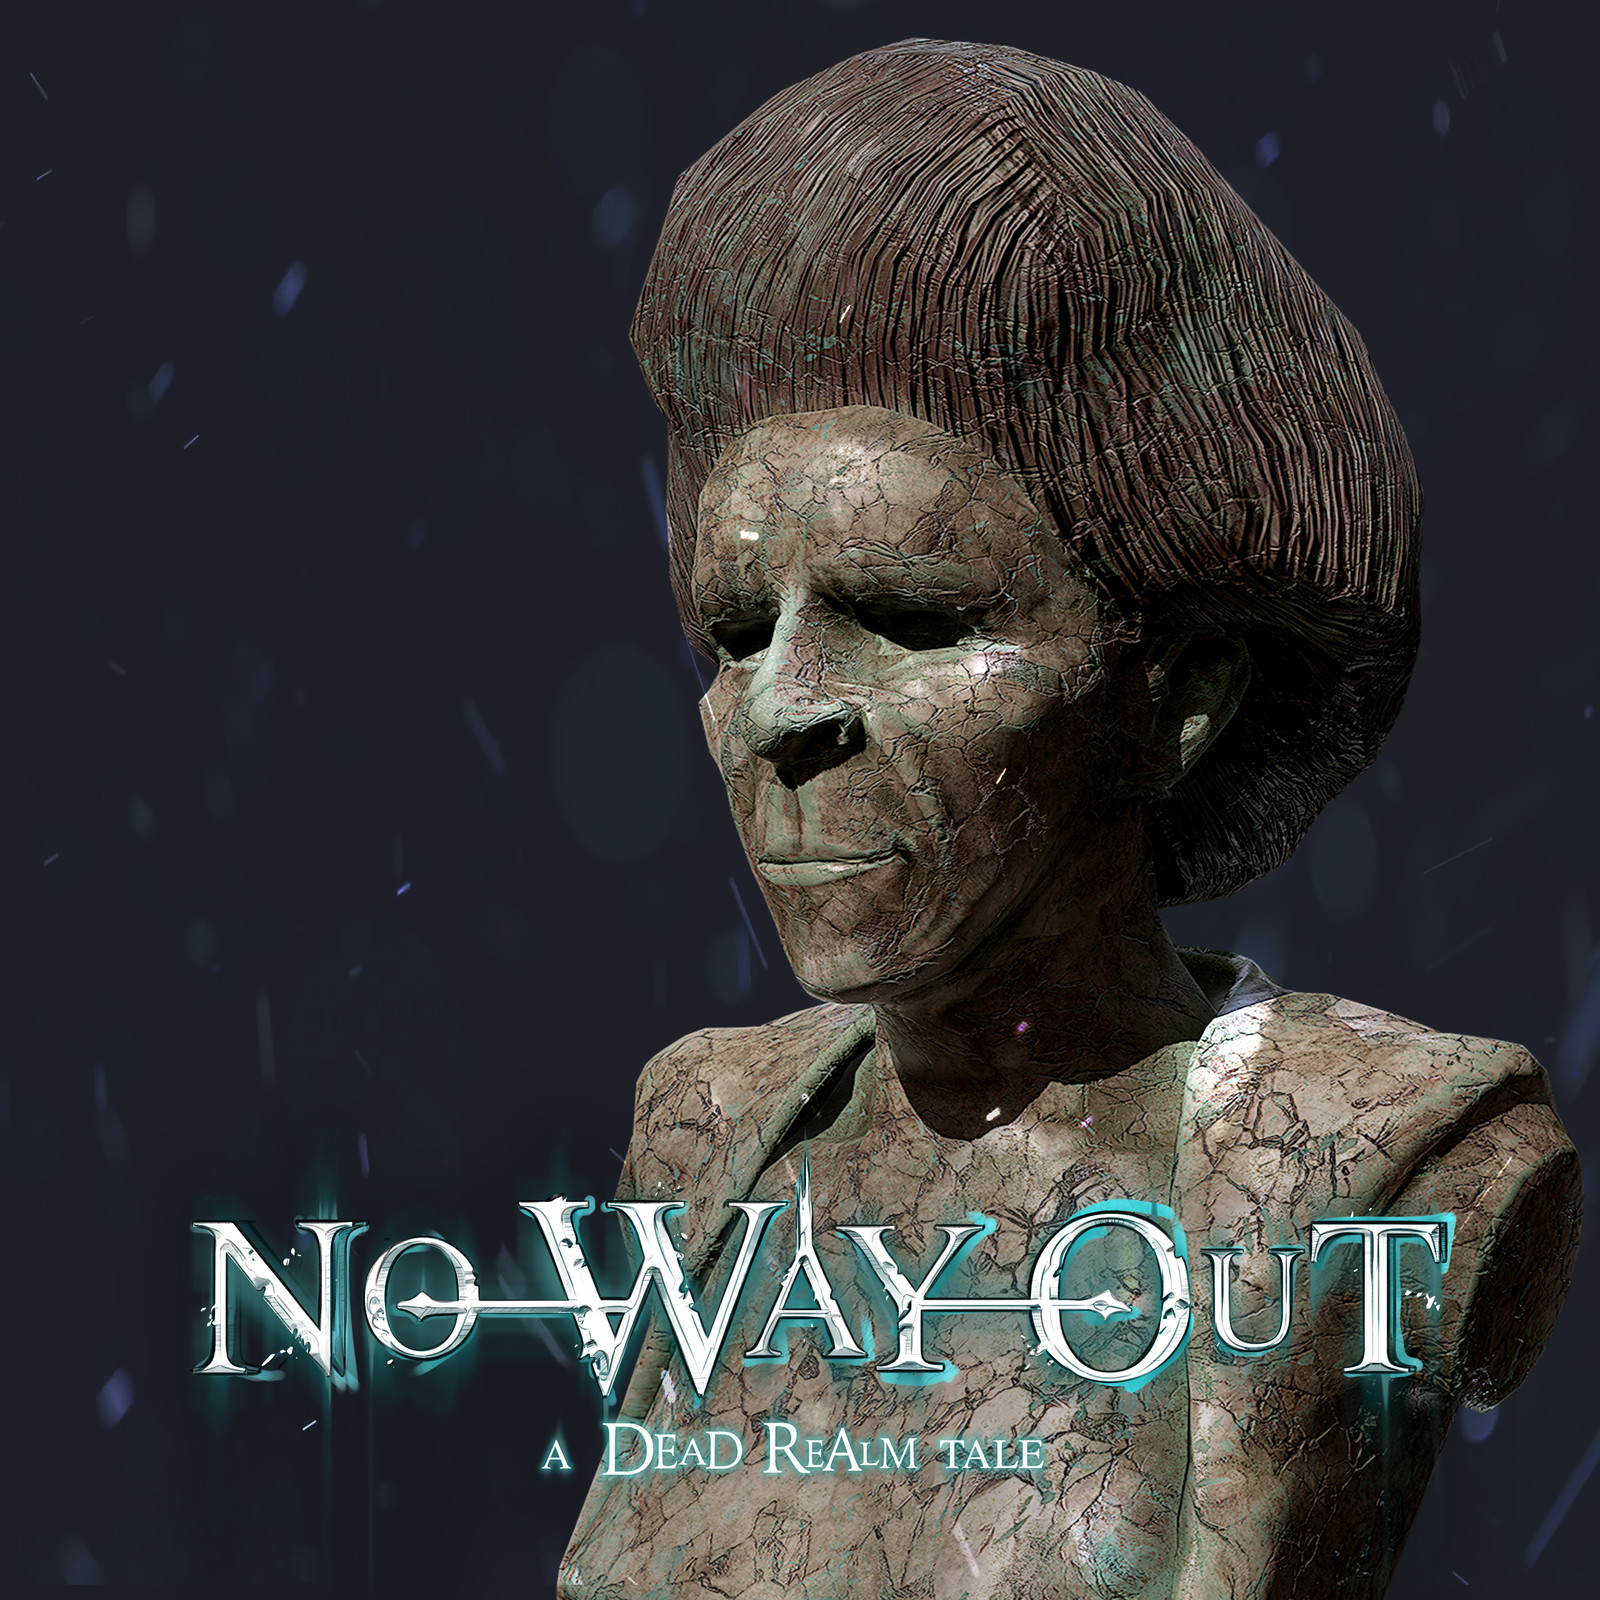 No Way Out - A Dead Realm Tale - Props - StatueBust 02